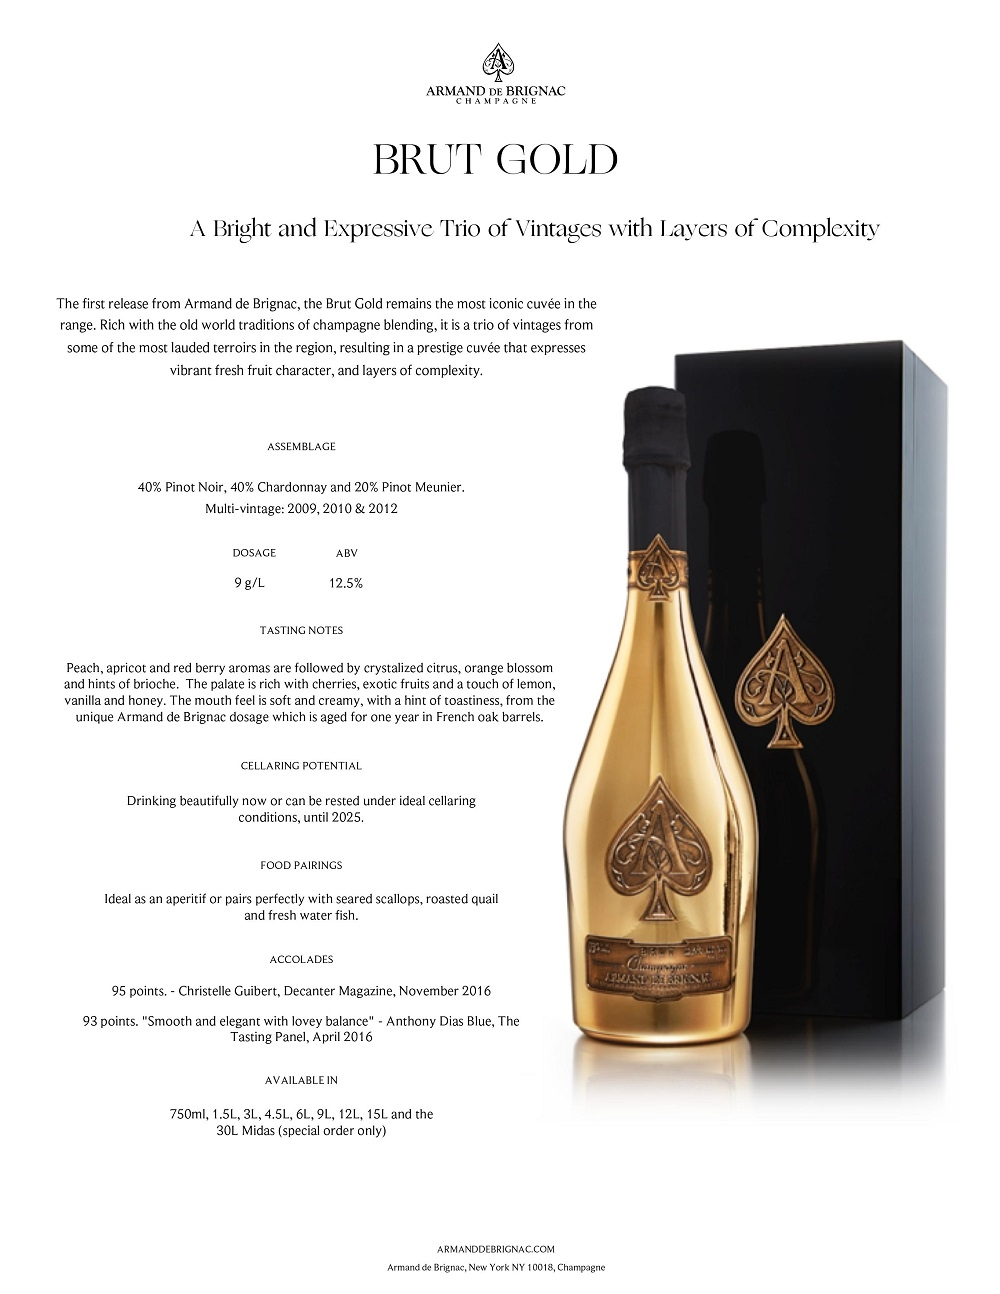 A Bright and Expressive Trio of Vintages with Layers of Complexity